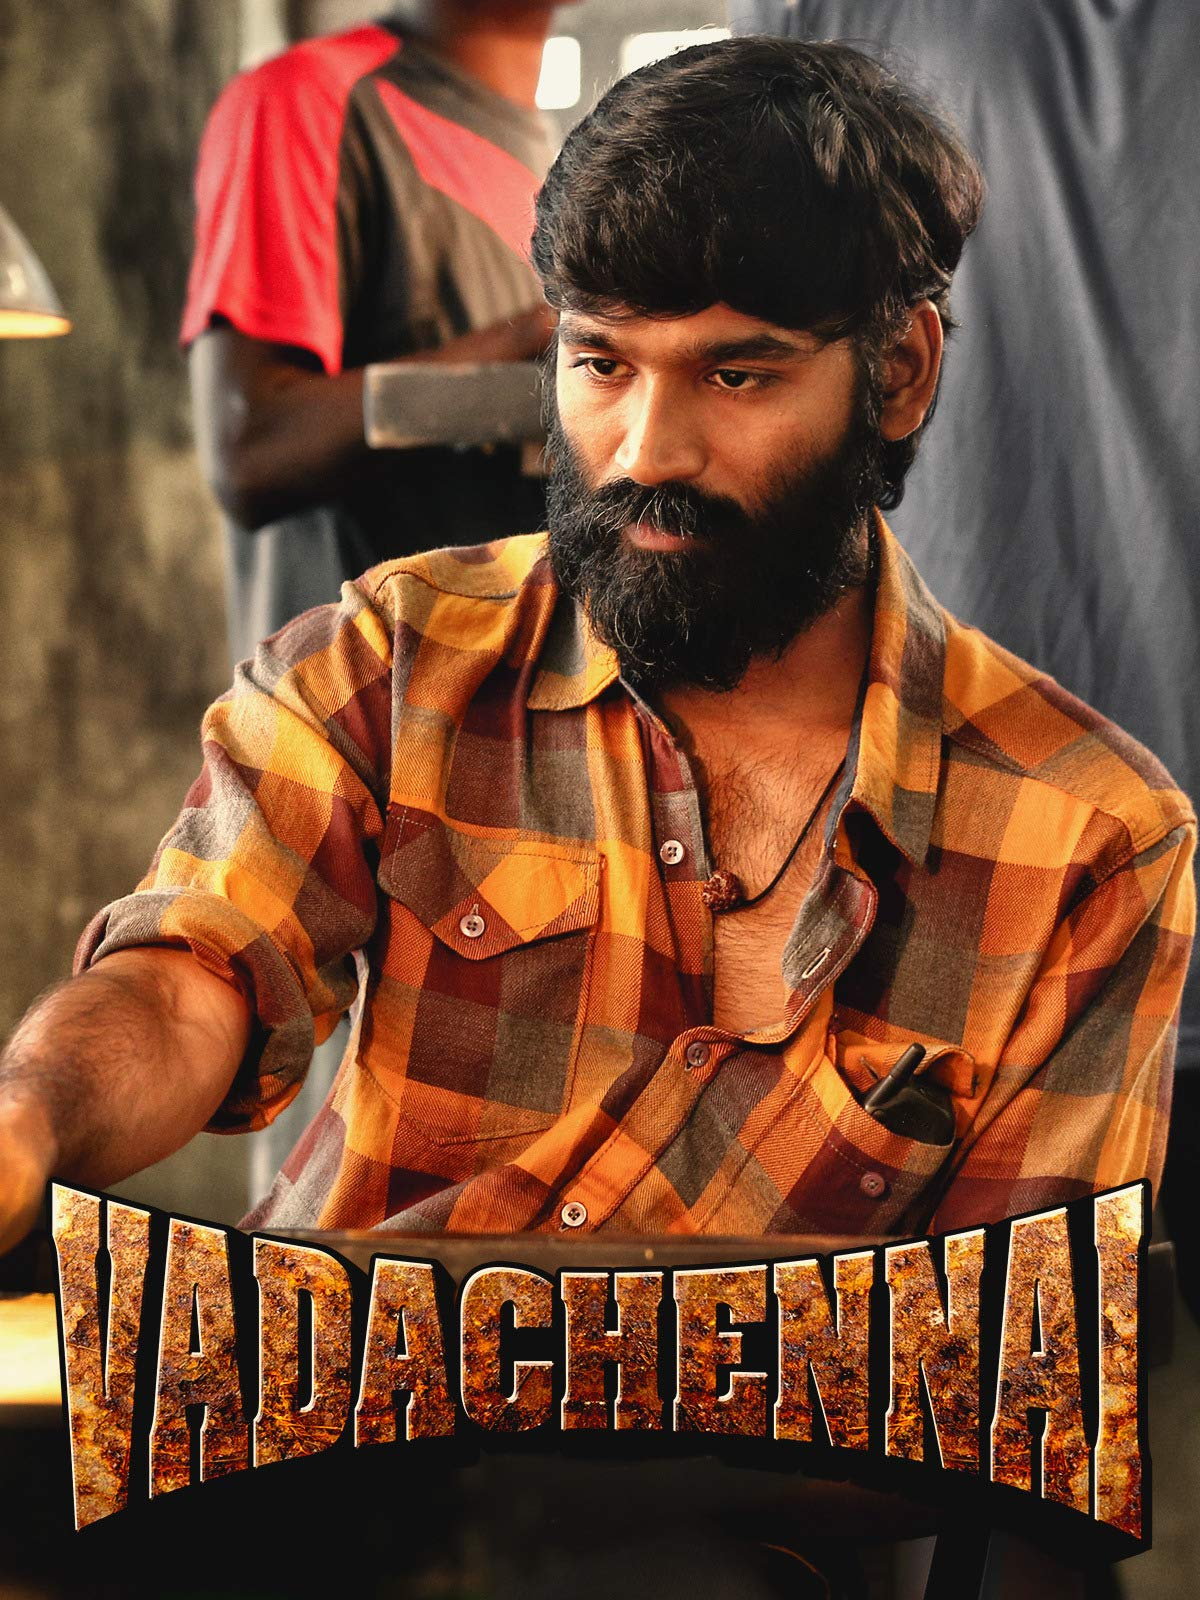 Chennai Central (Vada Chennai) 2020 Hindi Dubbed 1080P HDRip 1.5GB Download SouthFreak